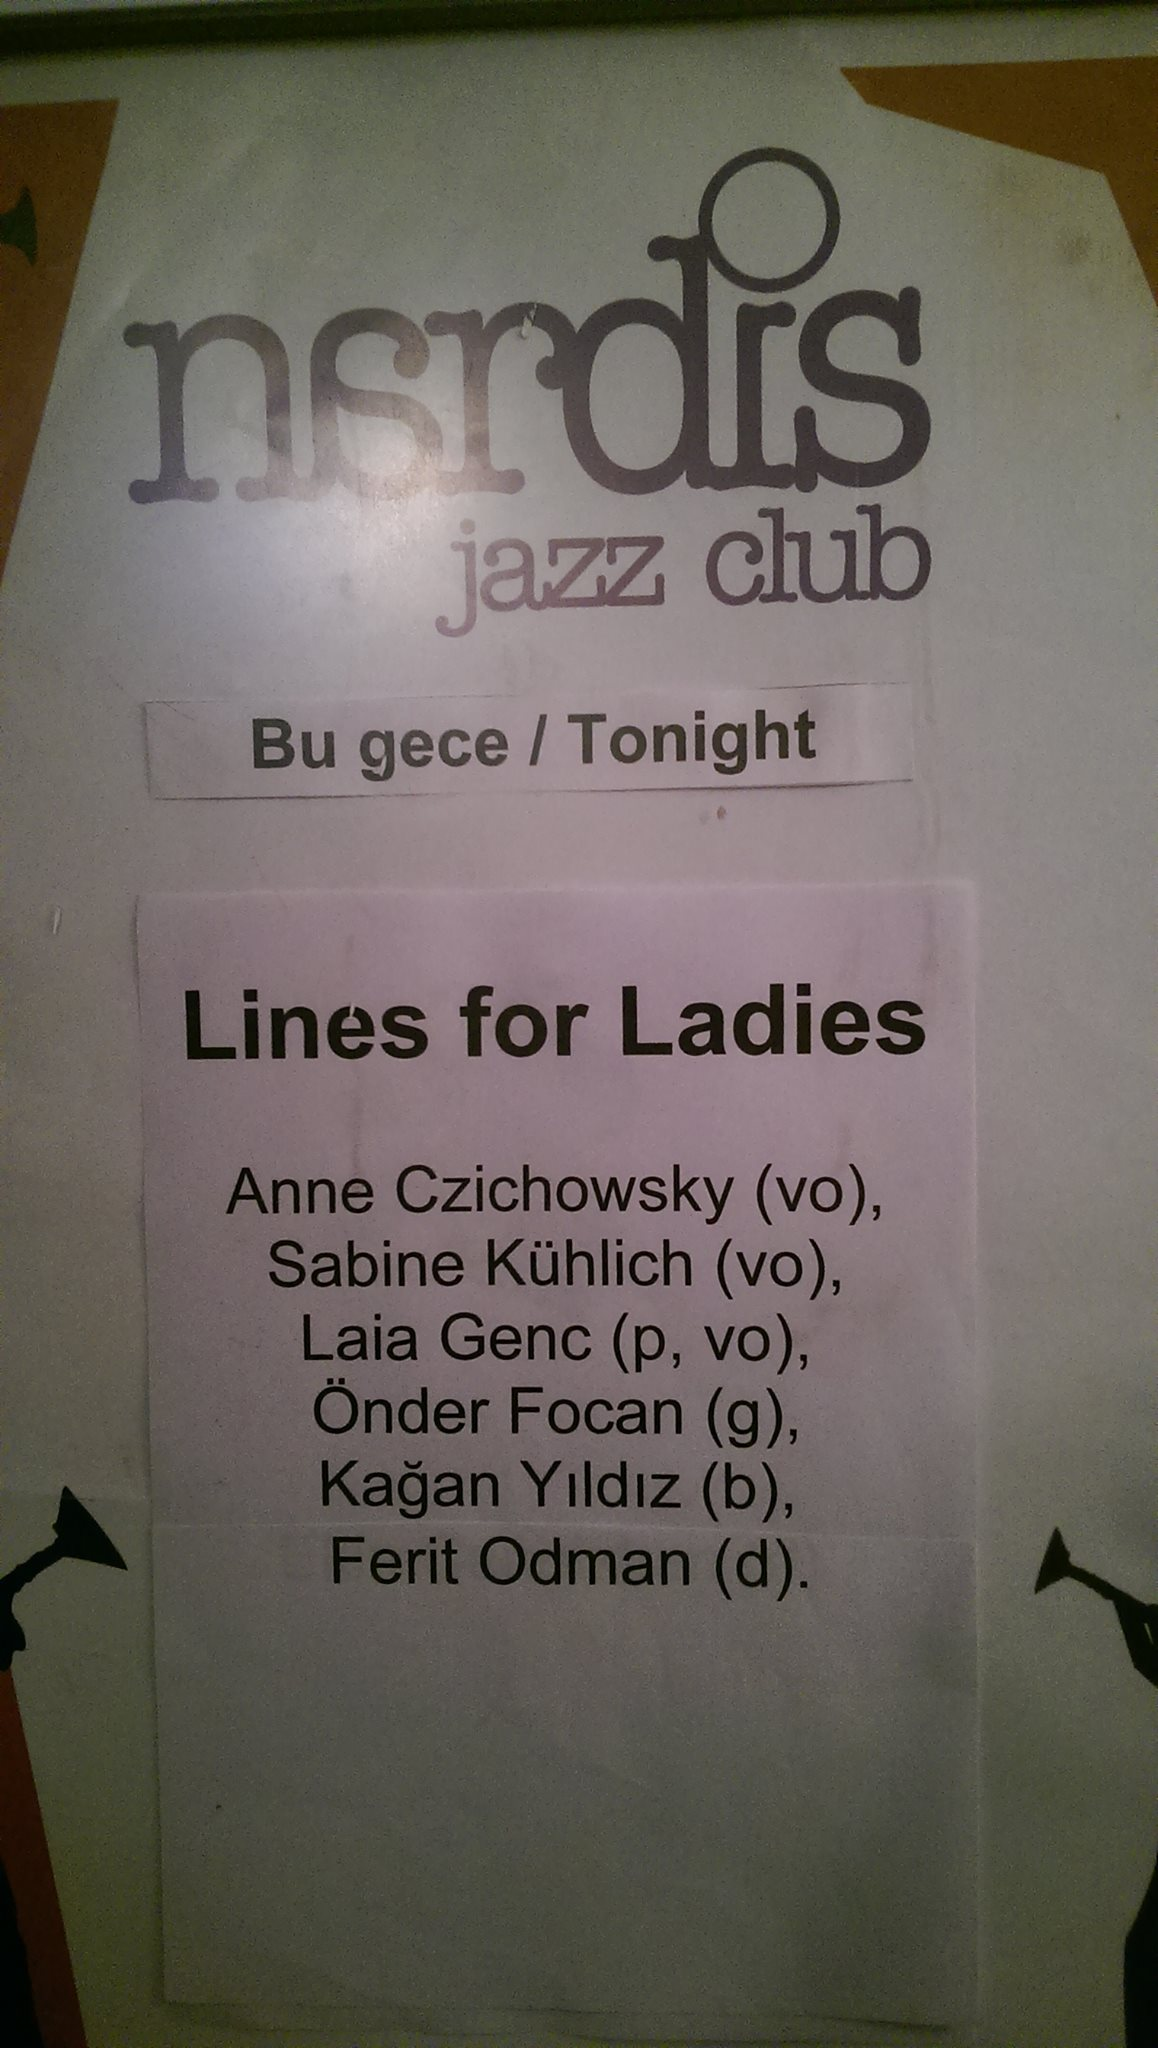 Lines For Ladies @ Nardis Jazz Club